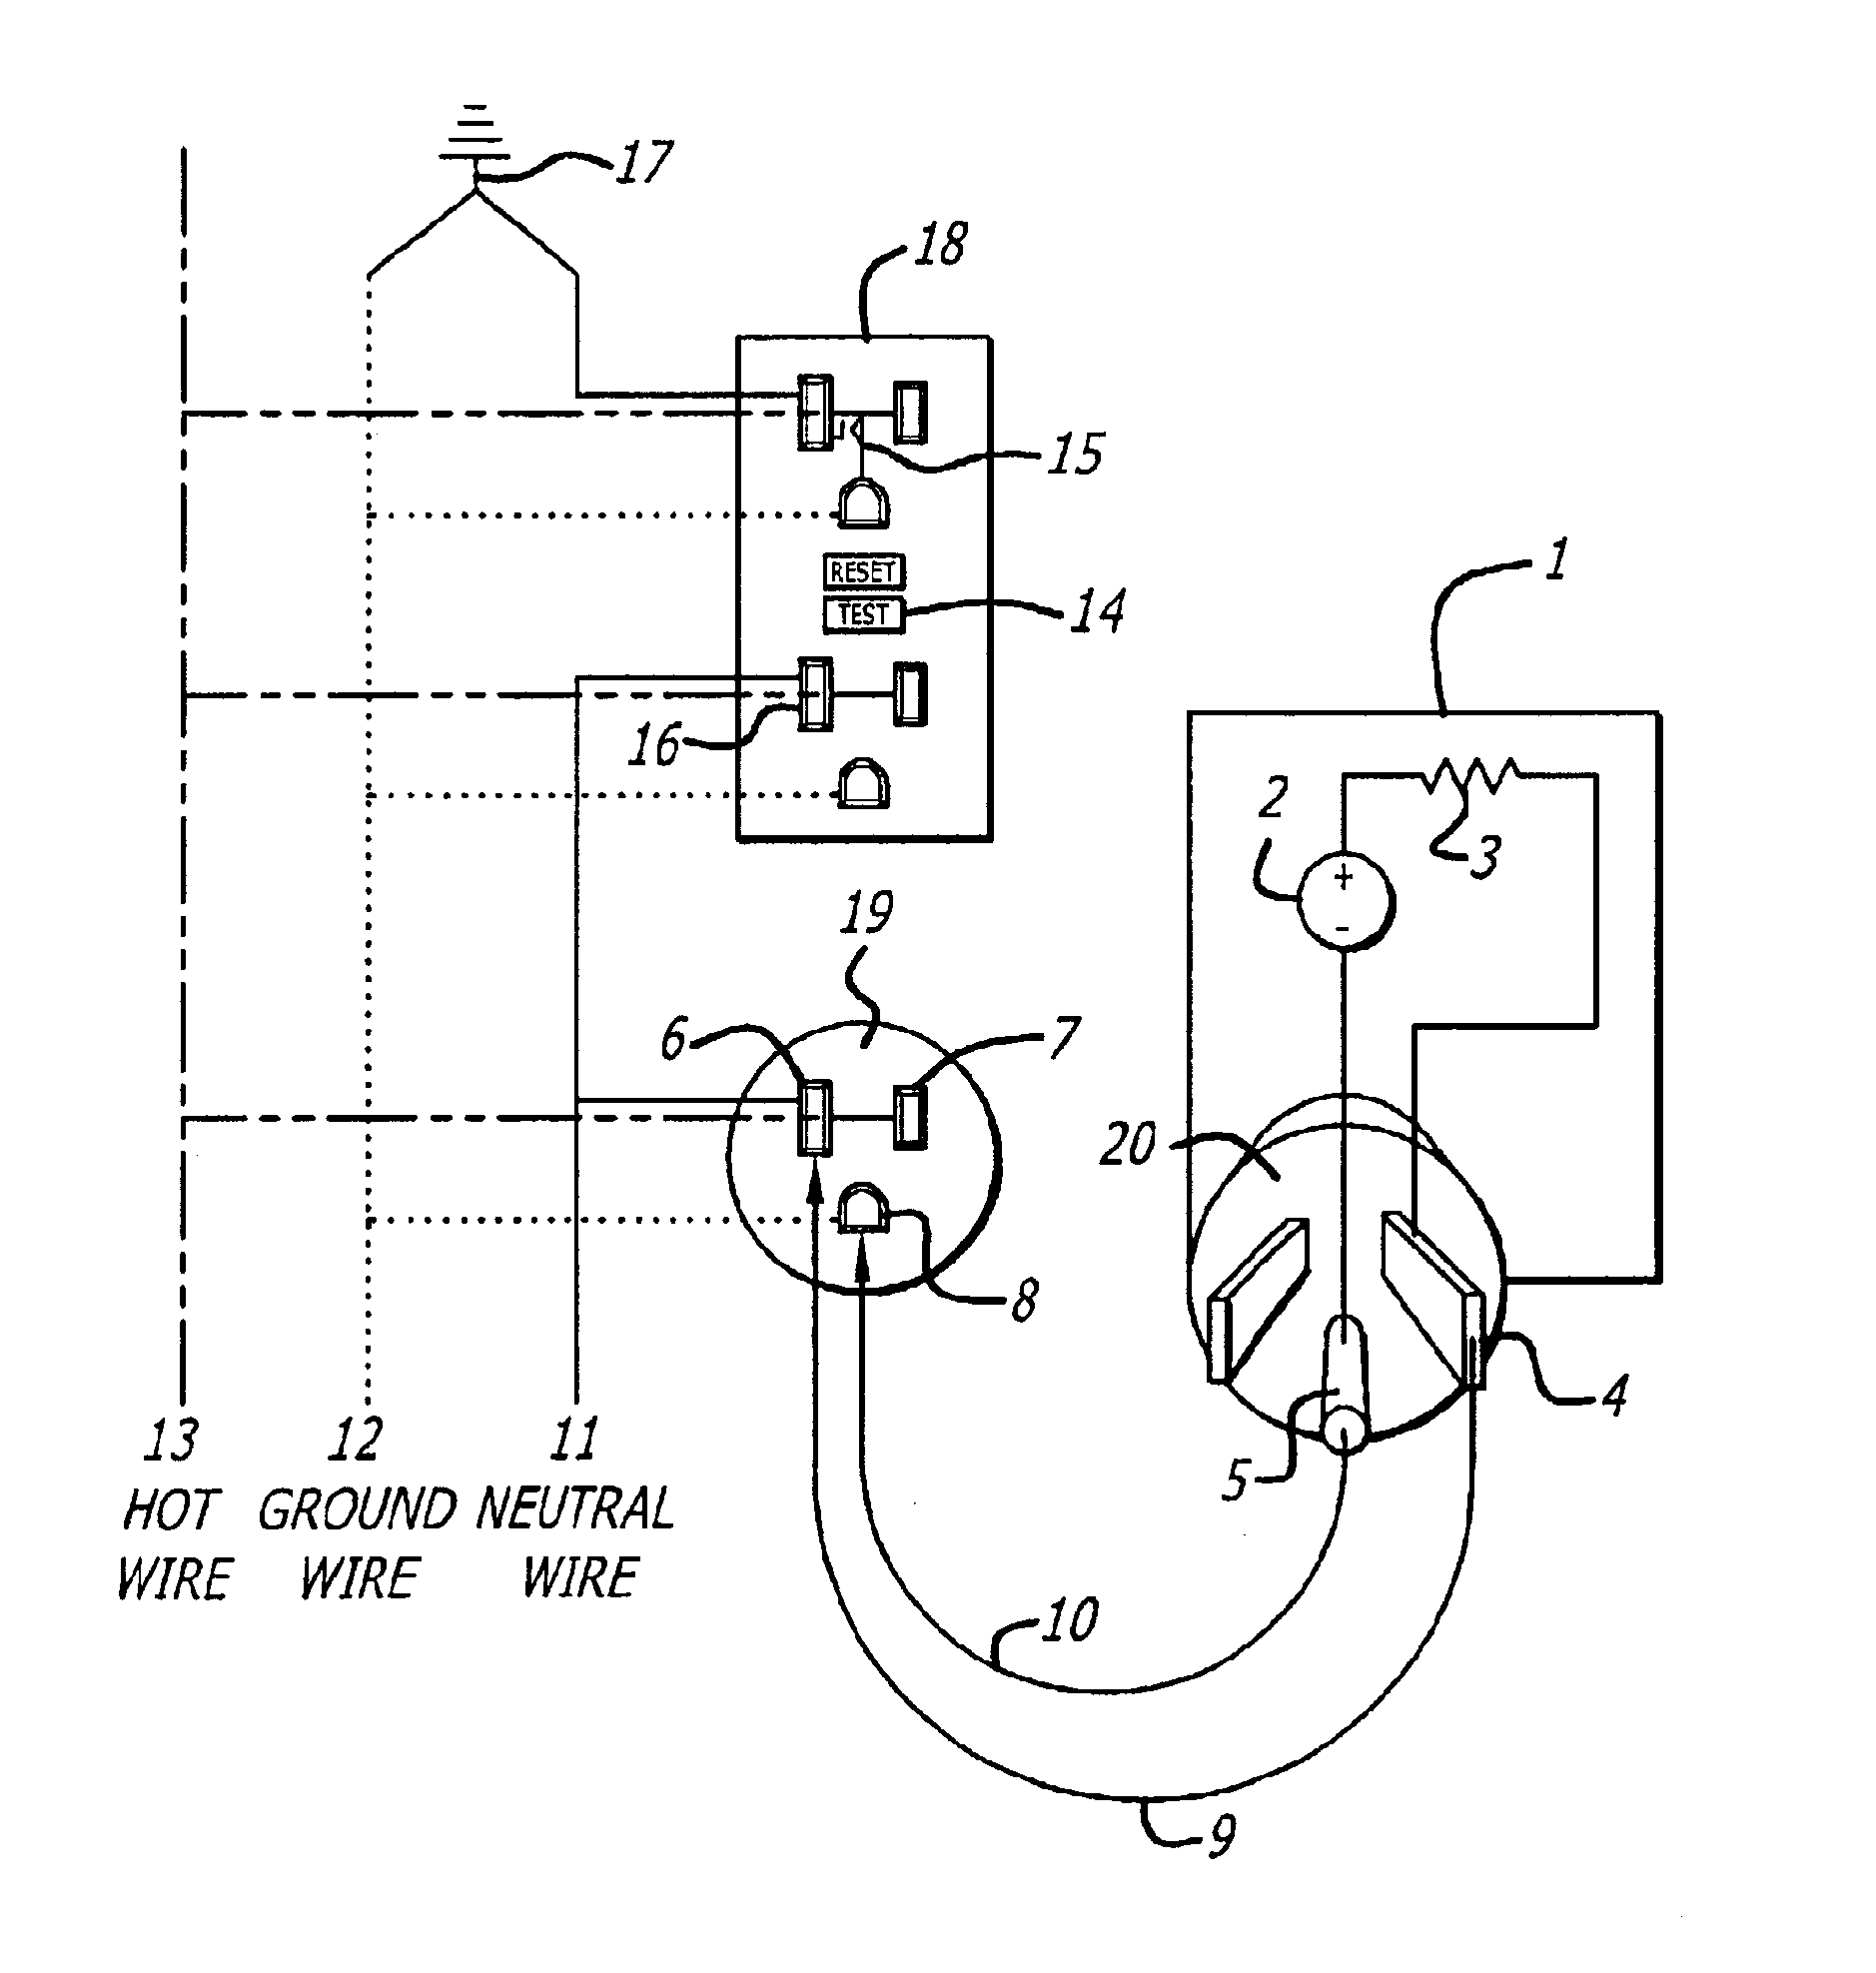 patent us6734680 - ground fault interrupt analyzer method and apparatus